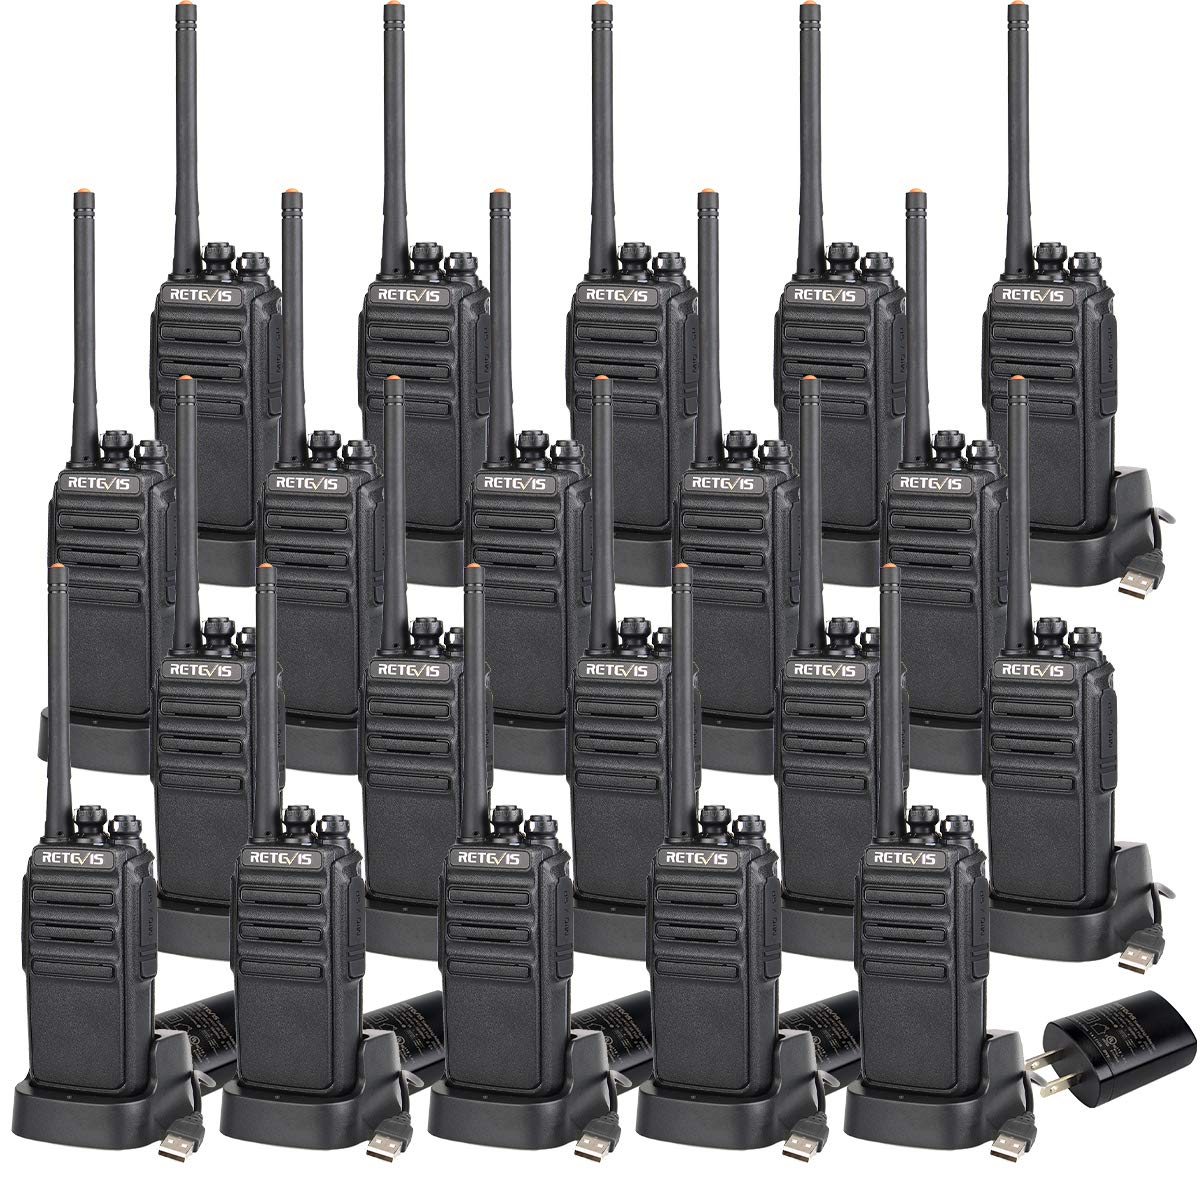 Retevis H-777S 2 Way Radios Walkie Talkies Rechargeable VOX Voice Encrypt Security Scan Two Way Radio Long Range 20 Pack